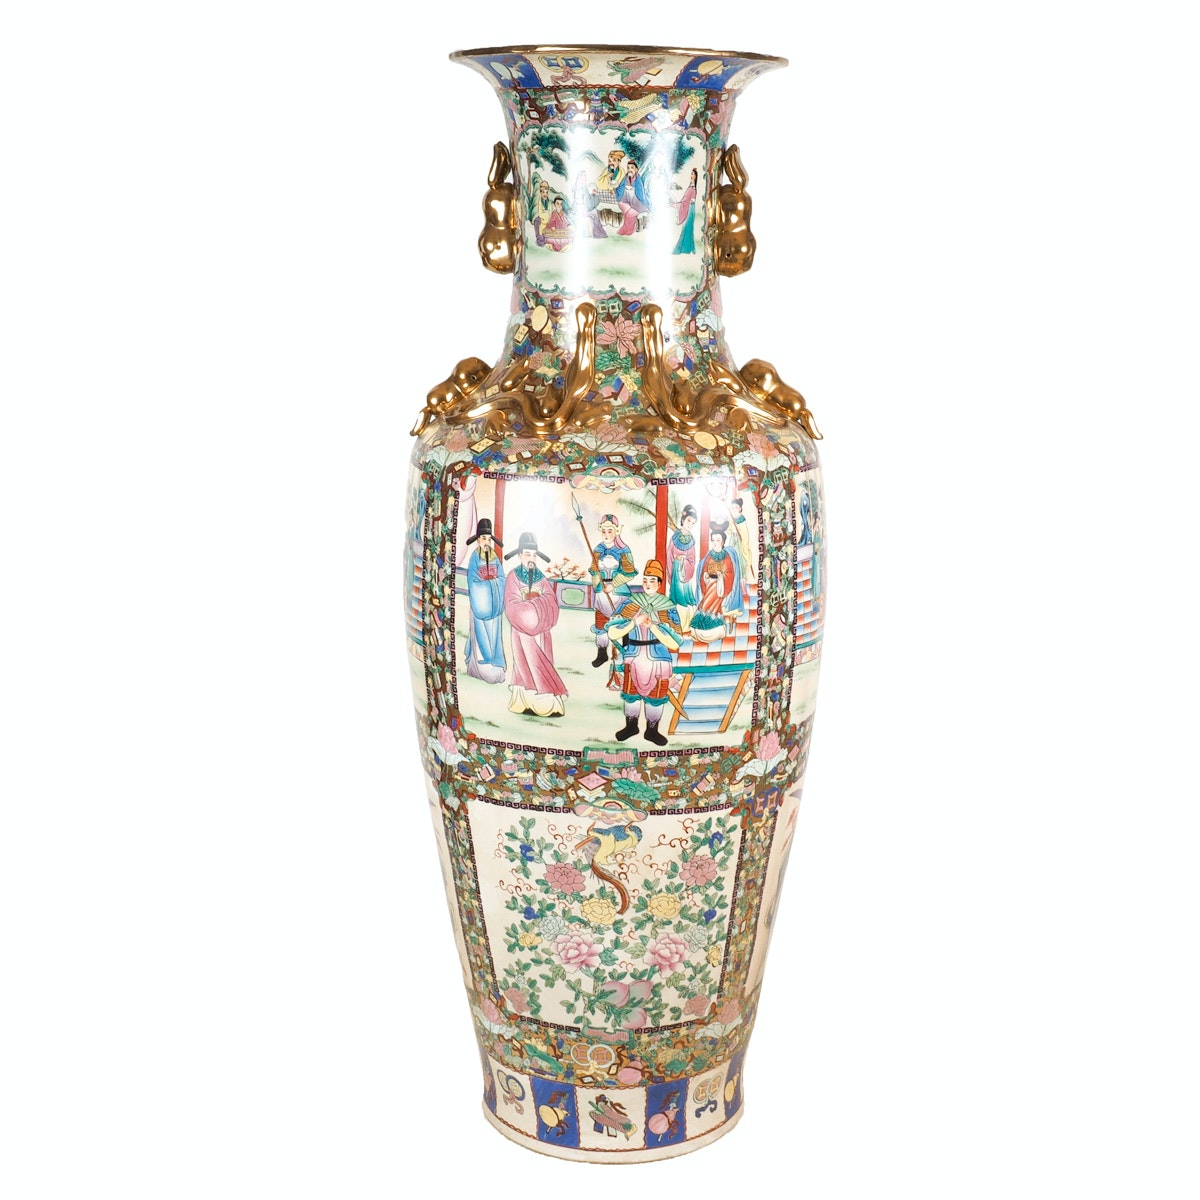 Monumental Hand-Painted Chinese Porcelain Vase